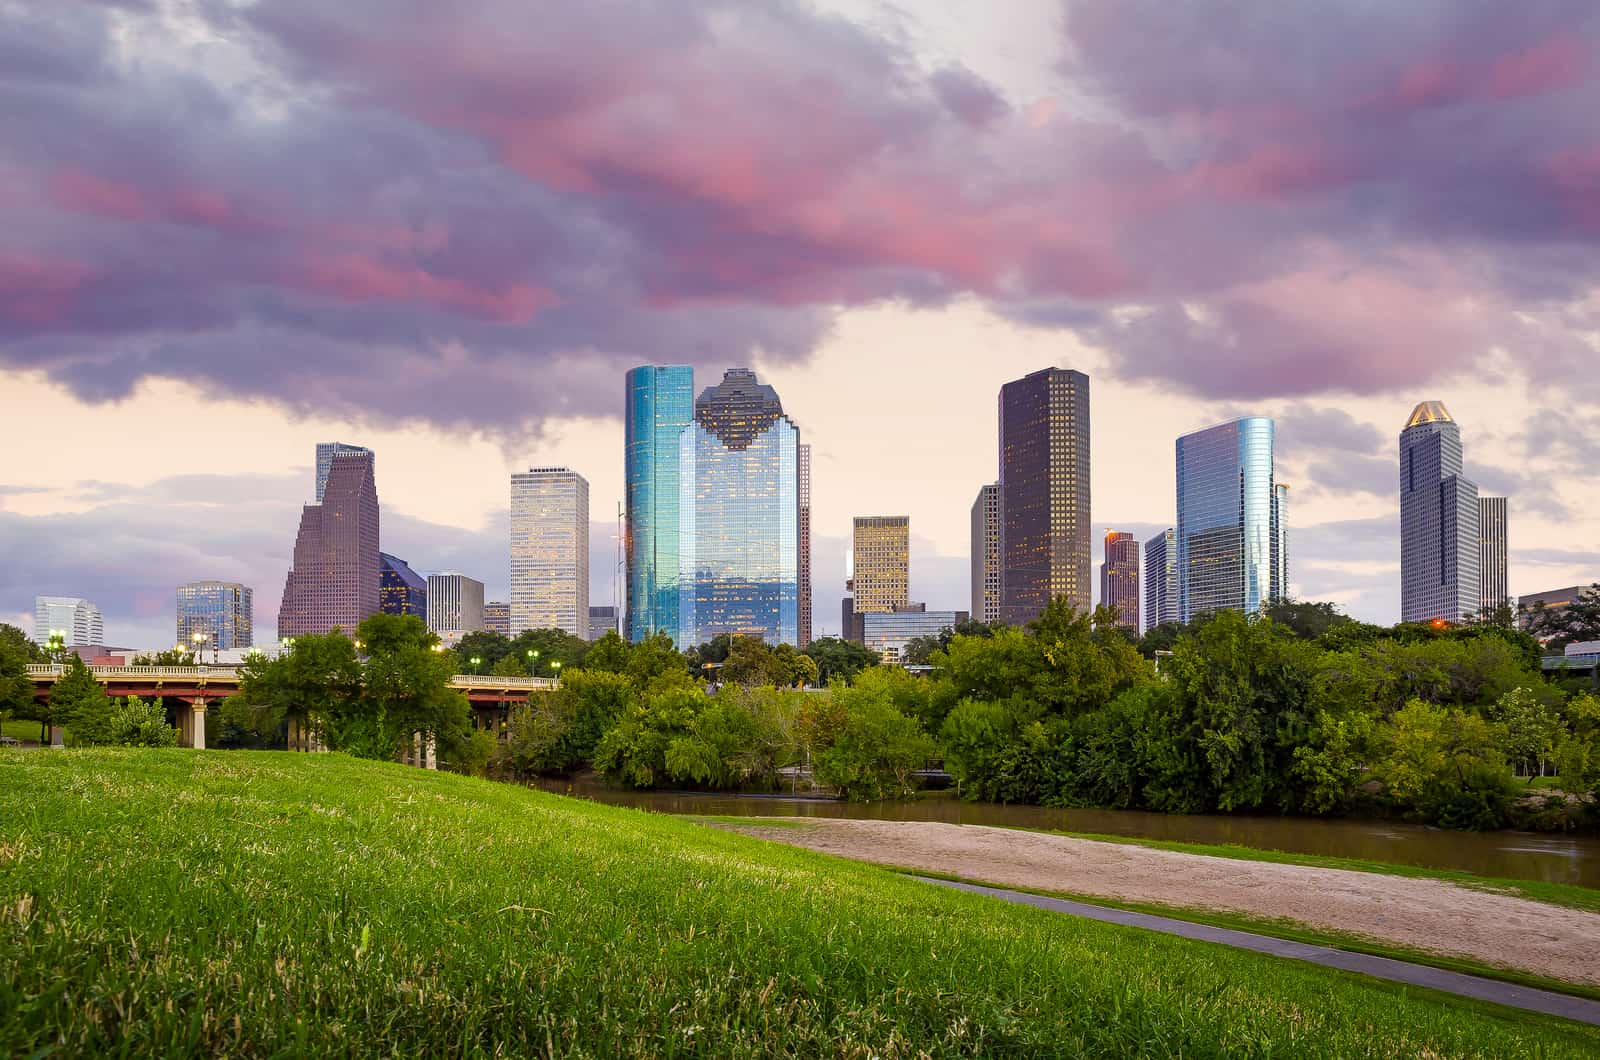 Petrostrat Houston Skyline at Pink Sunset